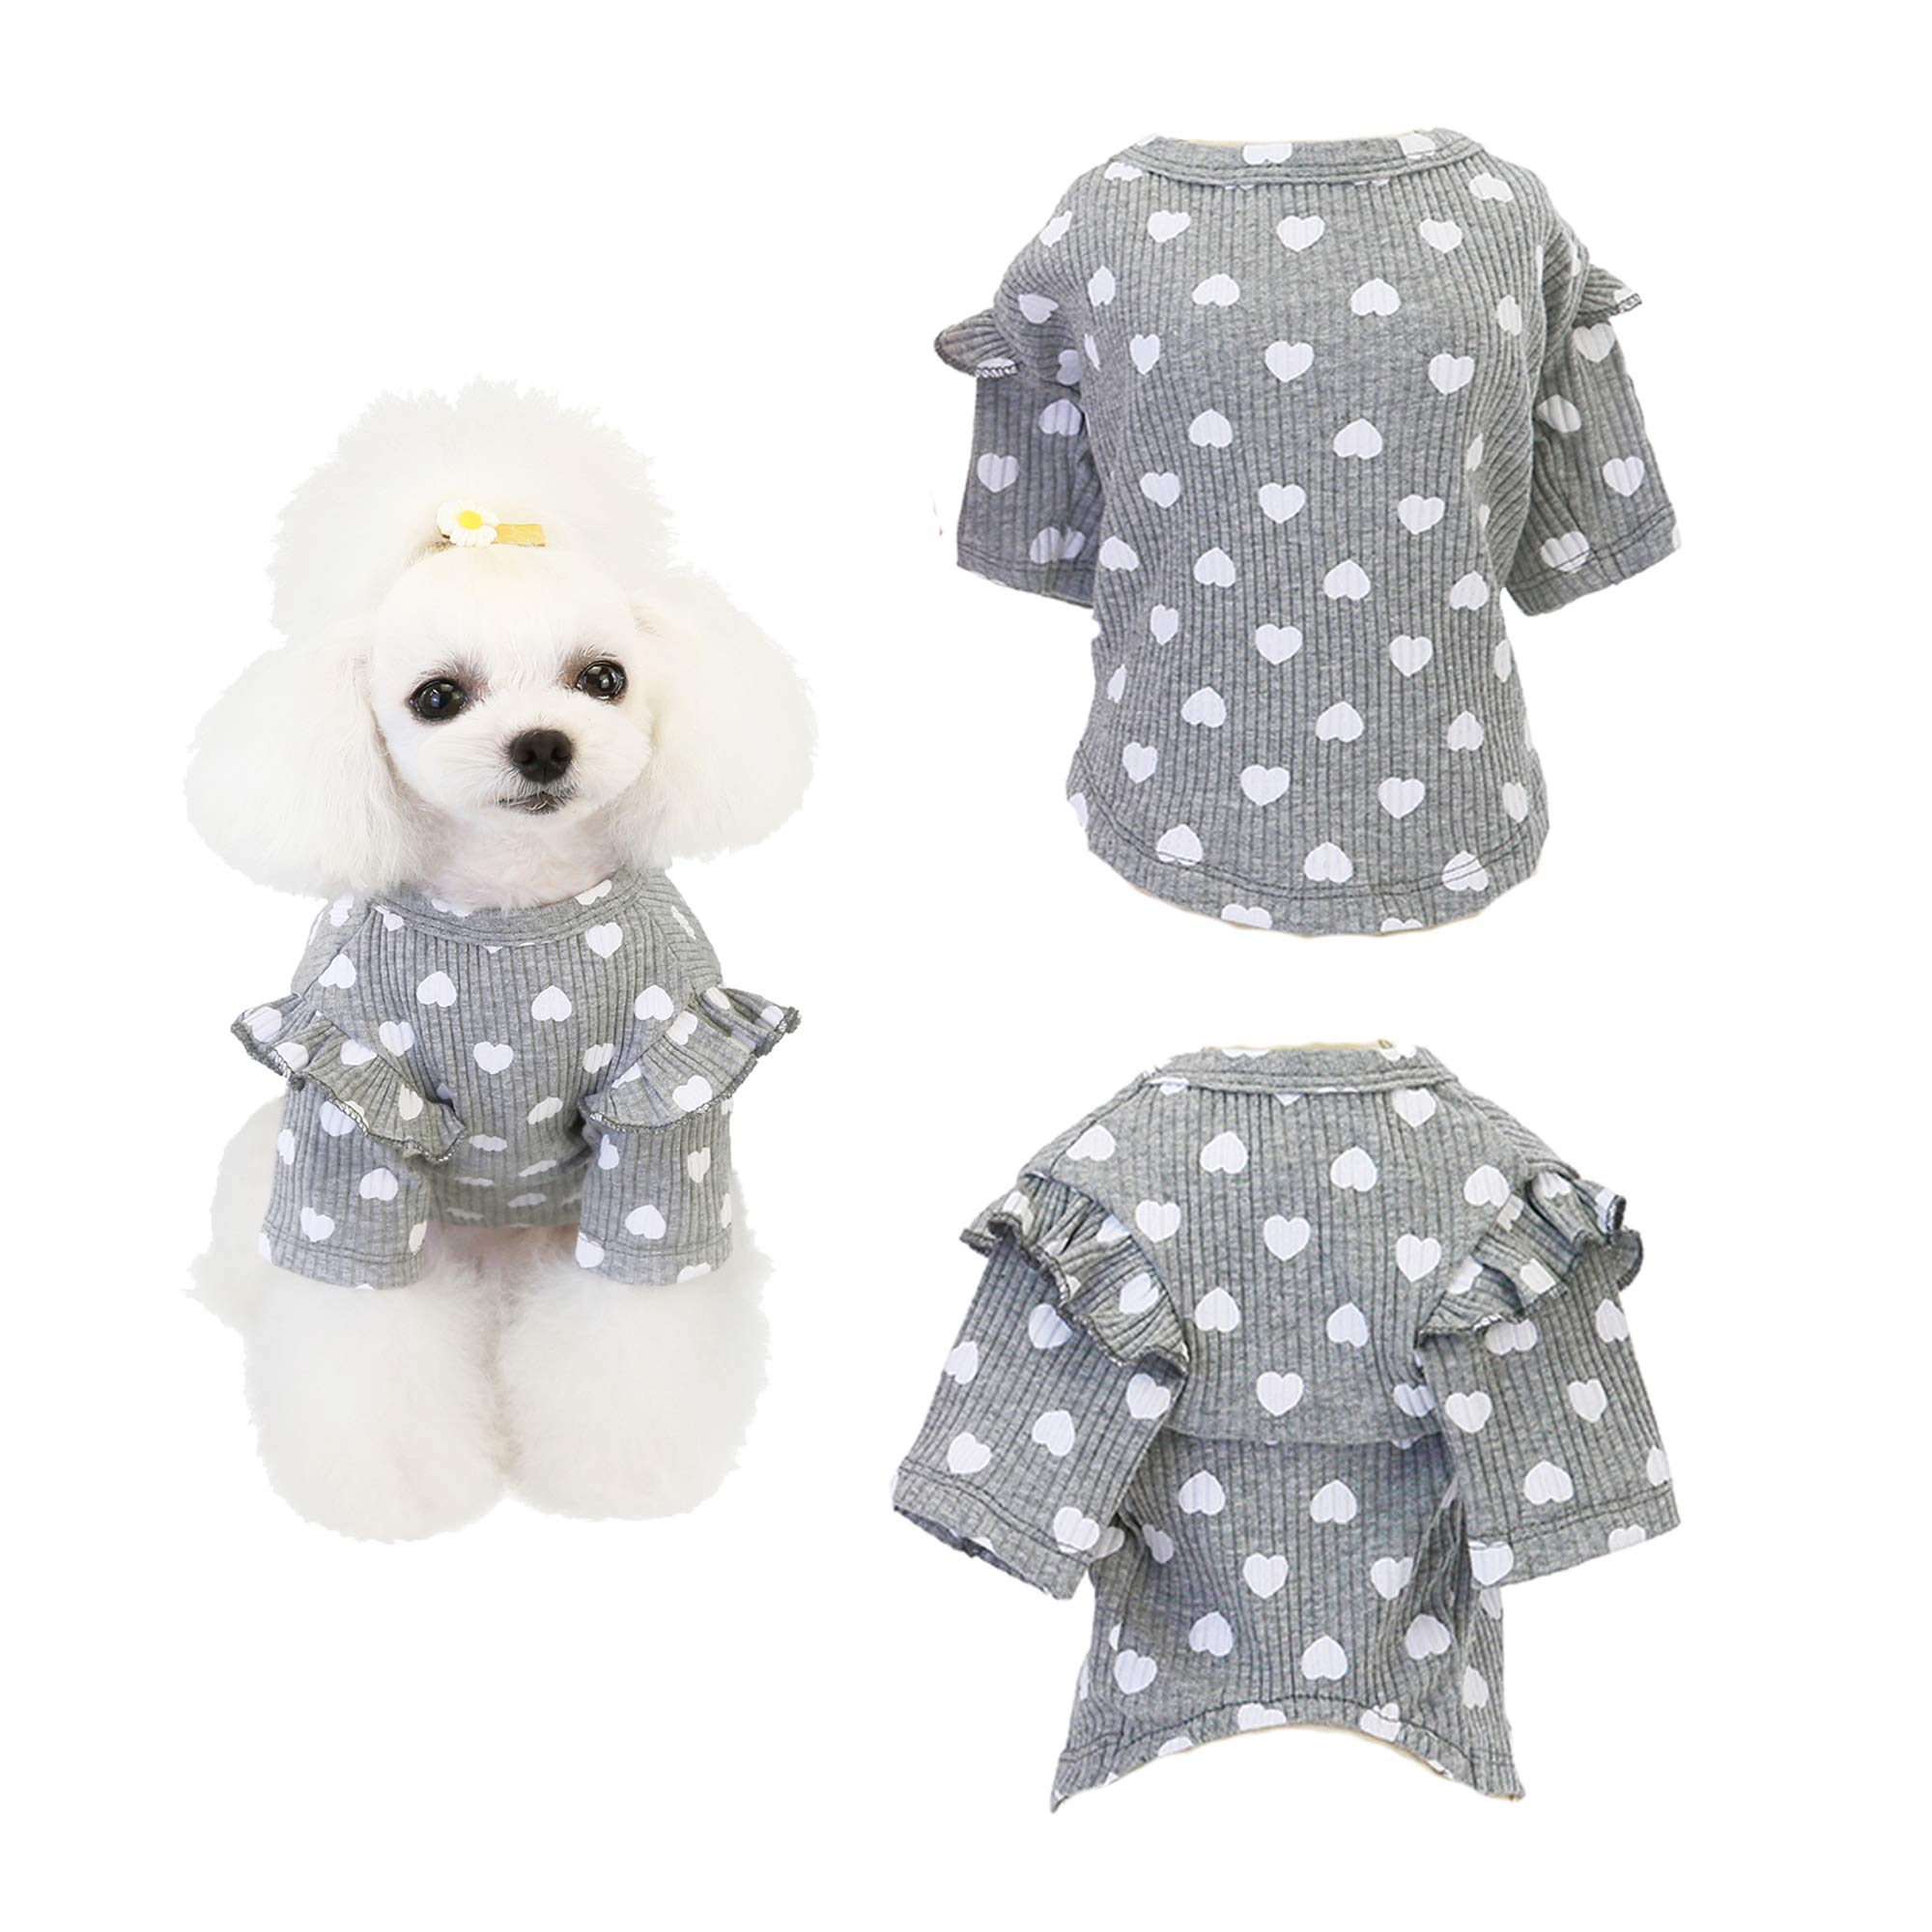 Xqpetlihai Dog Shirt with Short Sleeve Breathable Soft not Shrink Cotton Pet Apparel Dog T-Shirt with Heart Pattern for Small Medium Dogs Puppy Cats Kitten(Grey M)